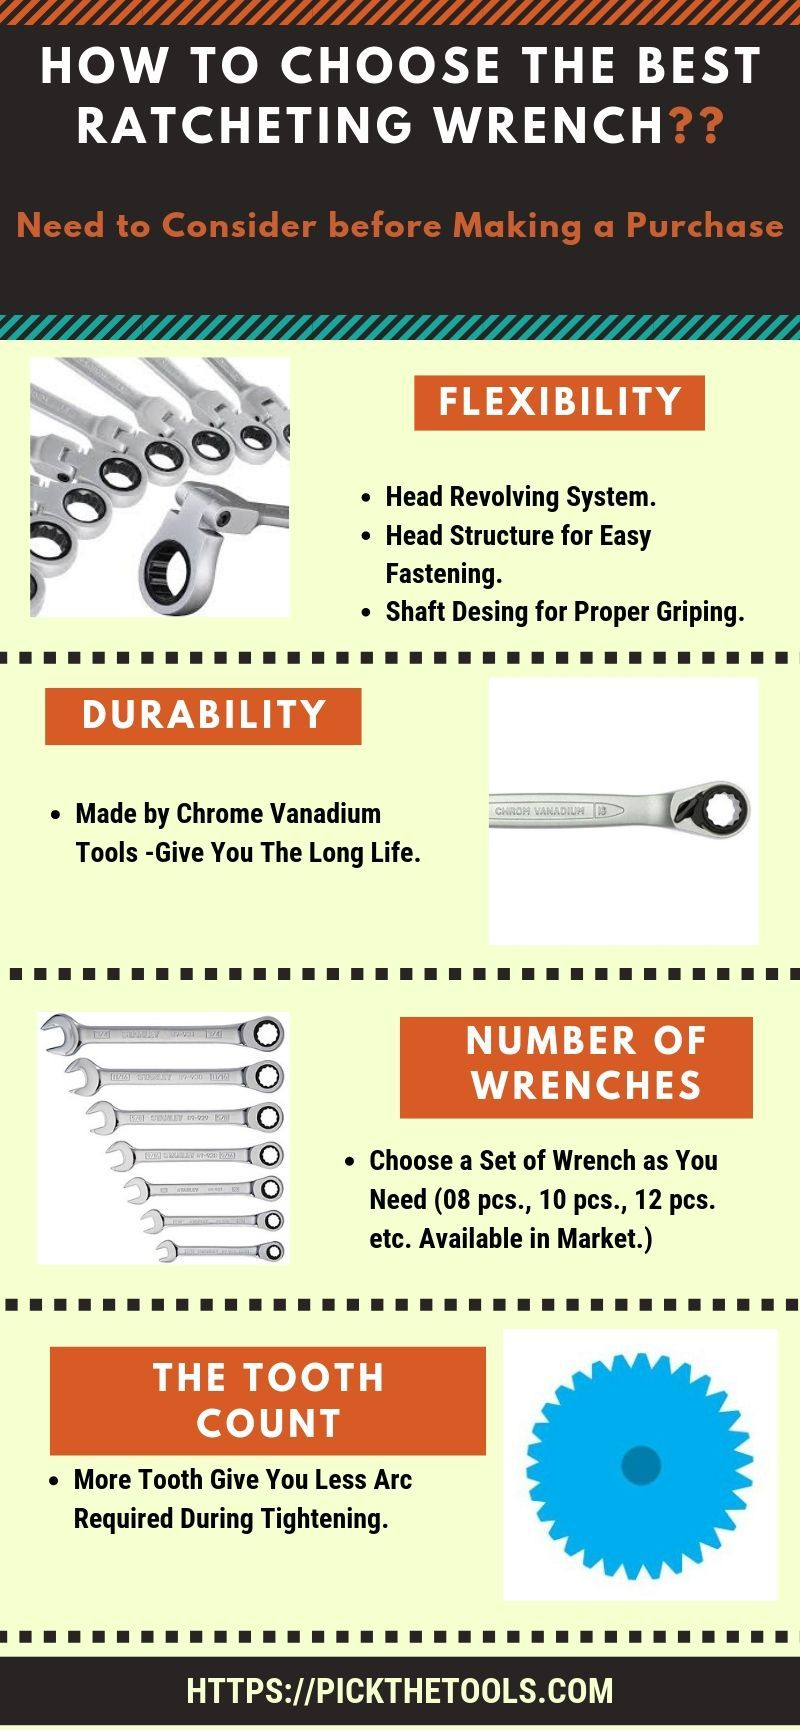 How to choose the best ratcheting wrench (1)